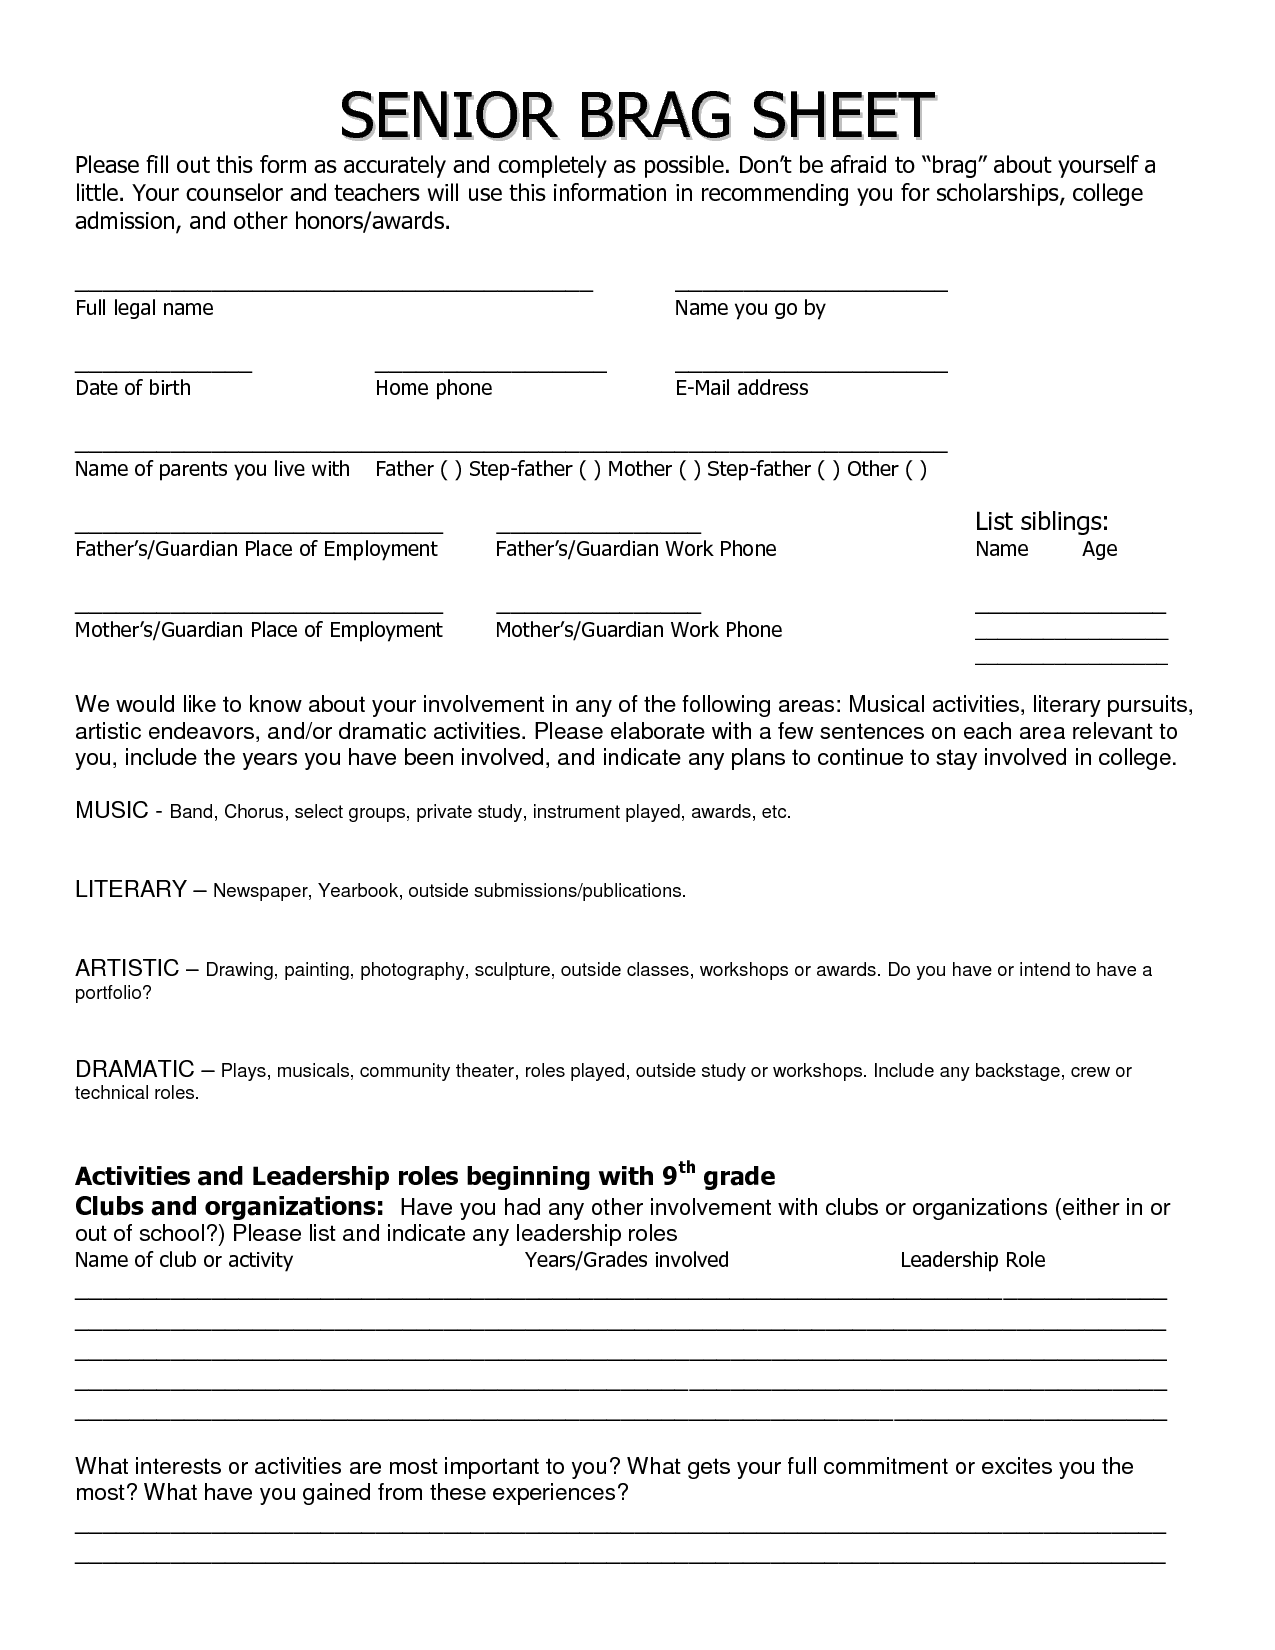 Common Application Essay College Confidential resignation letter ...